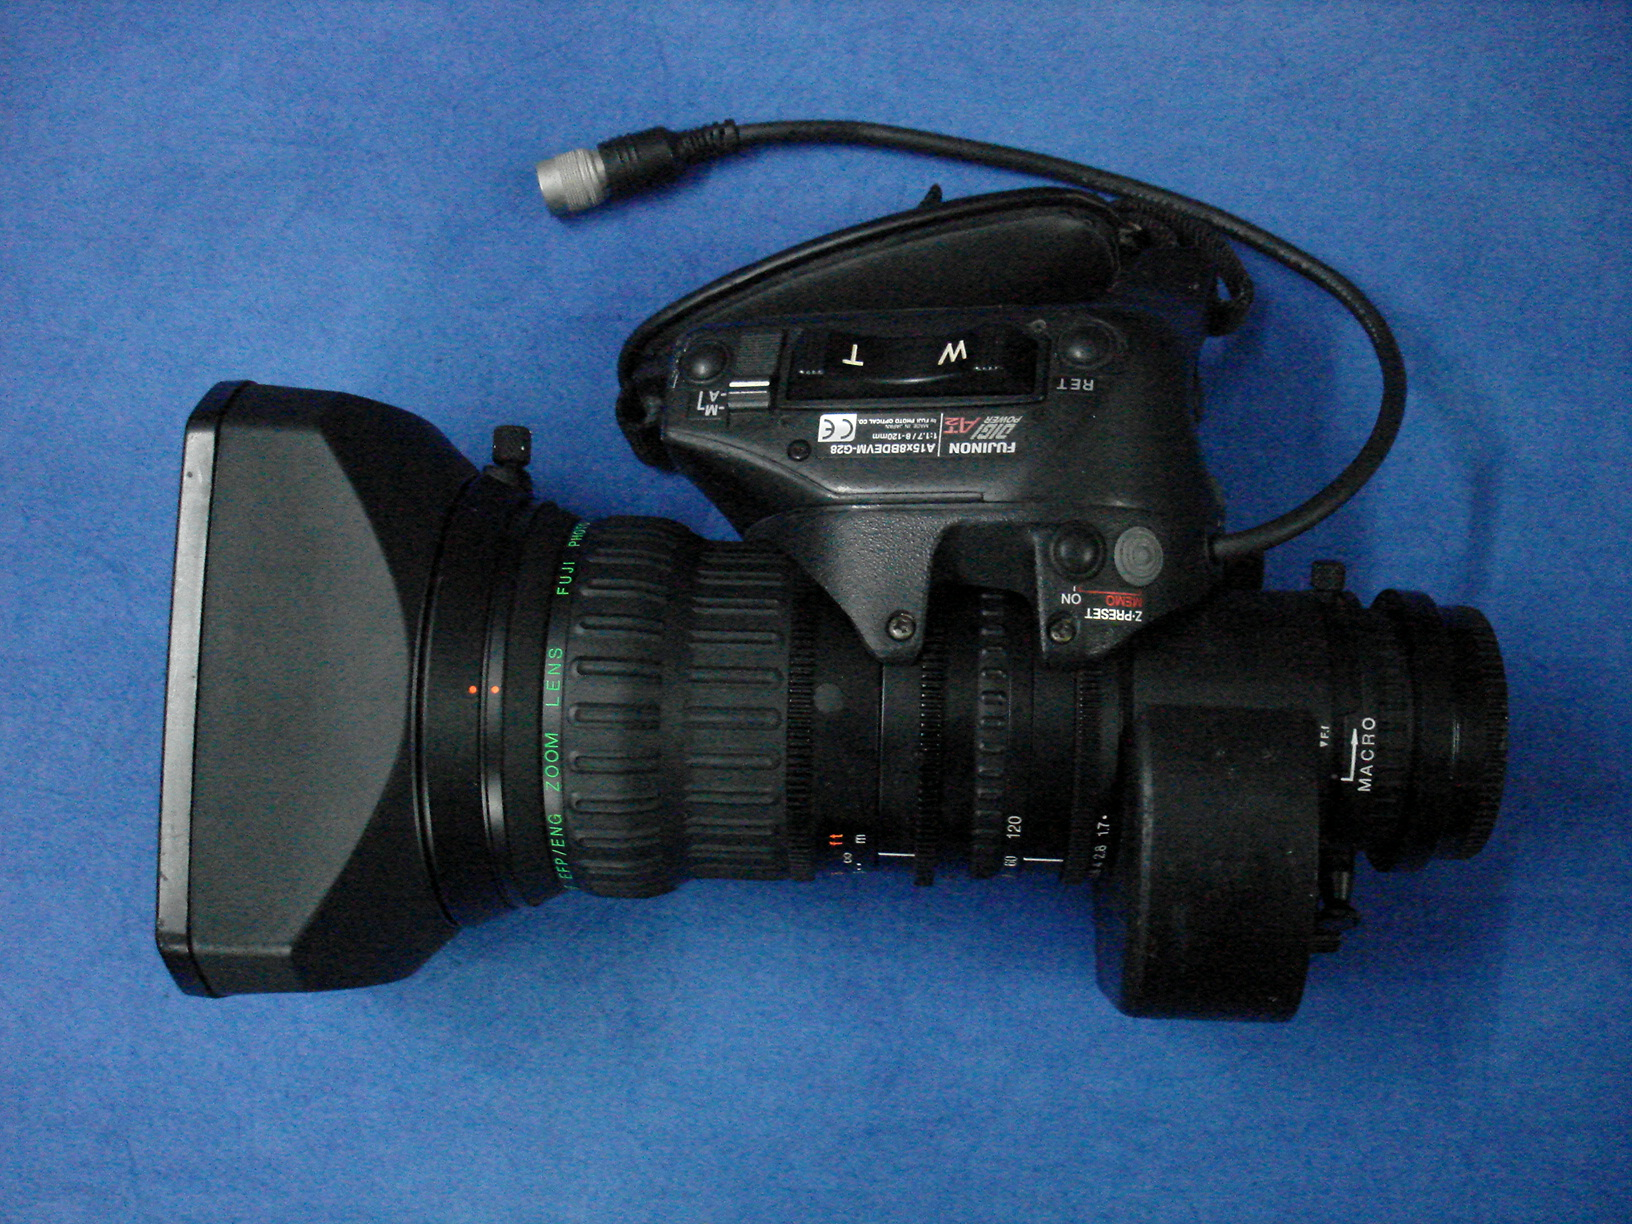 Fujinon Fujinon A15 X 8 doubler lens - 16:9 switchable WRS version with 2x extender - Image #1